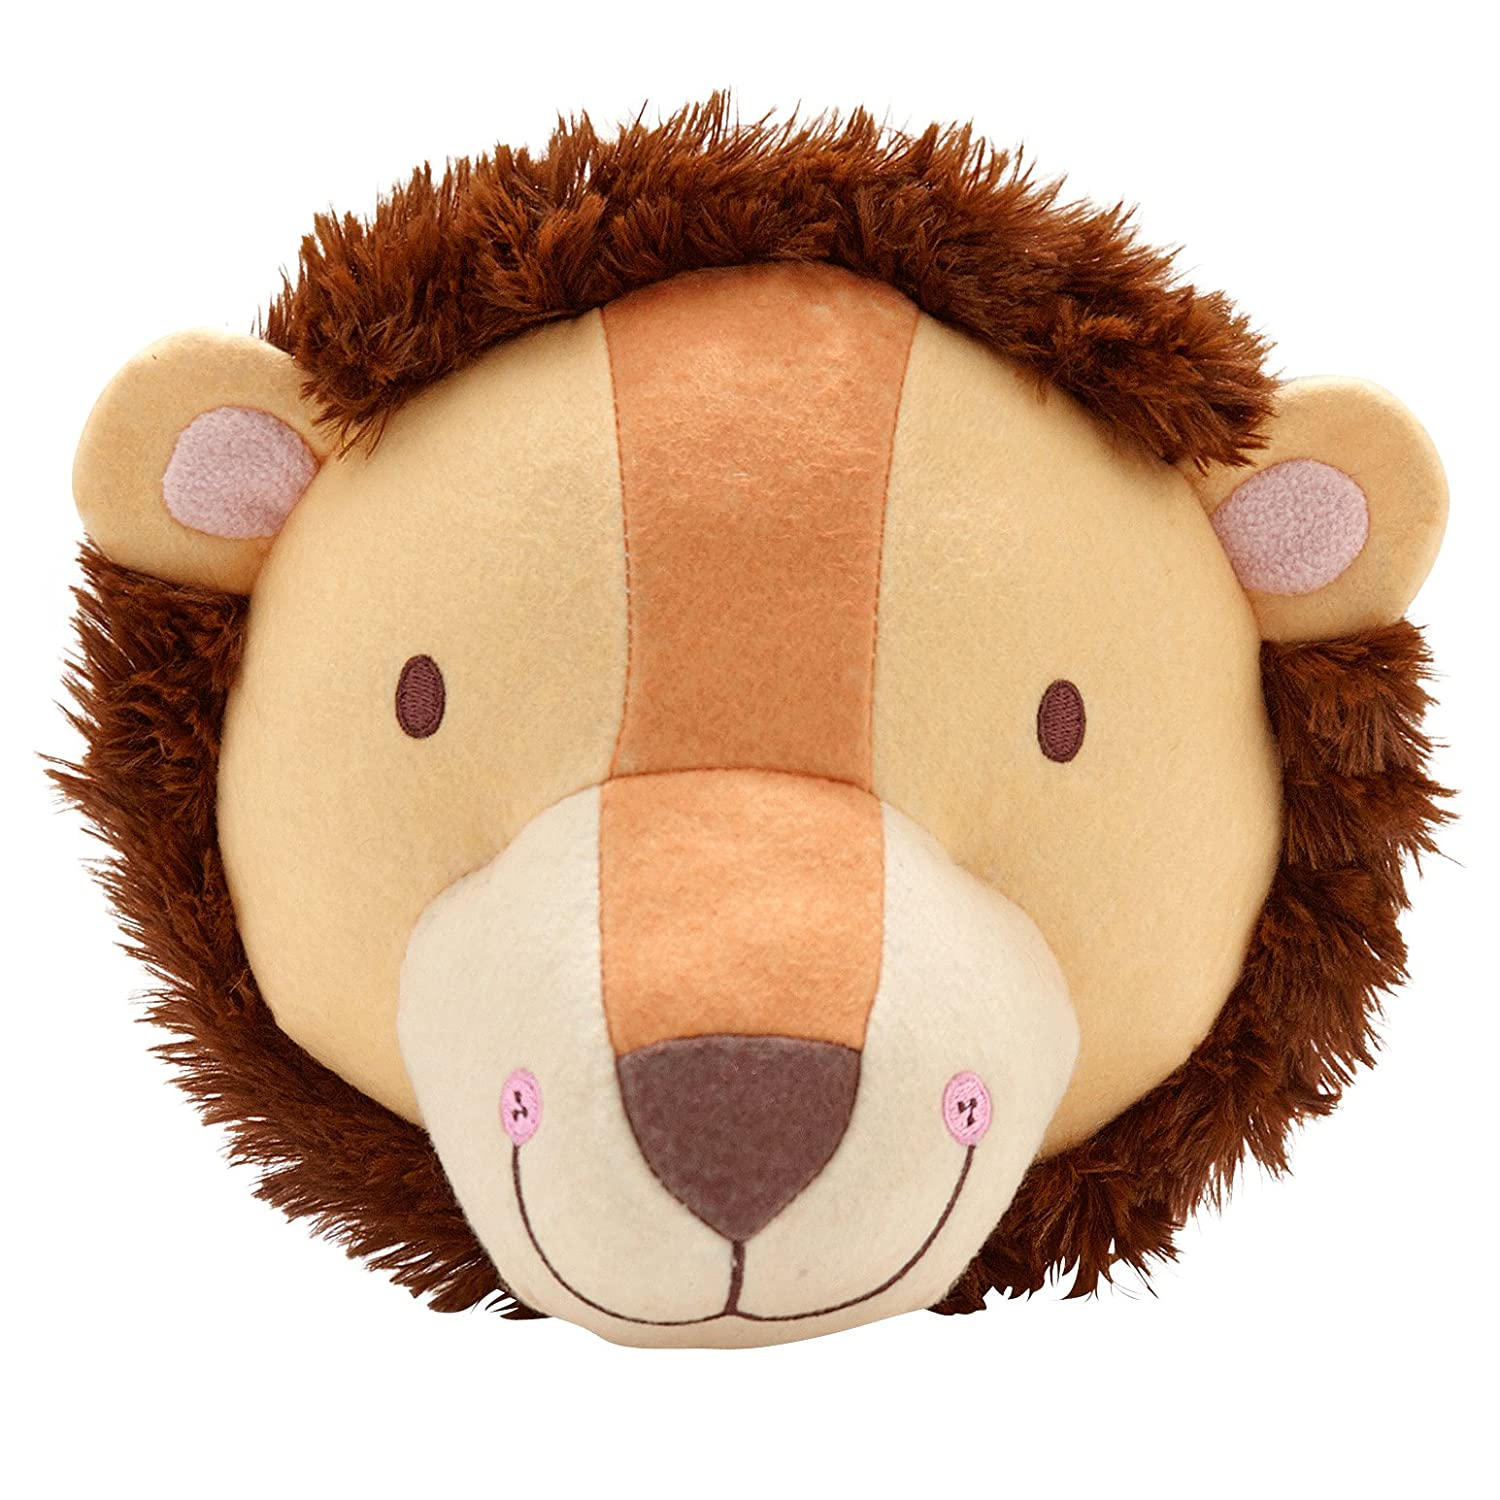 Little Love by NoJo – 3-D Lion Stuffed Wall Hanging Decor, Fauxidermy - Nursery, Bedroom or Playroom Décor